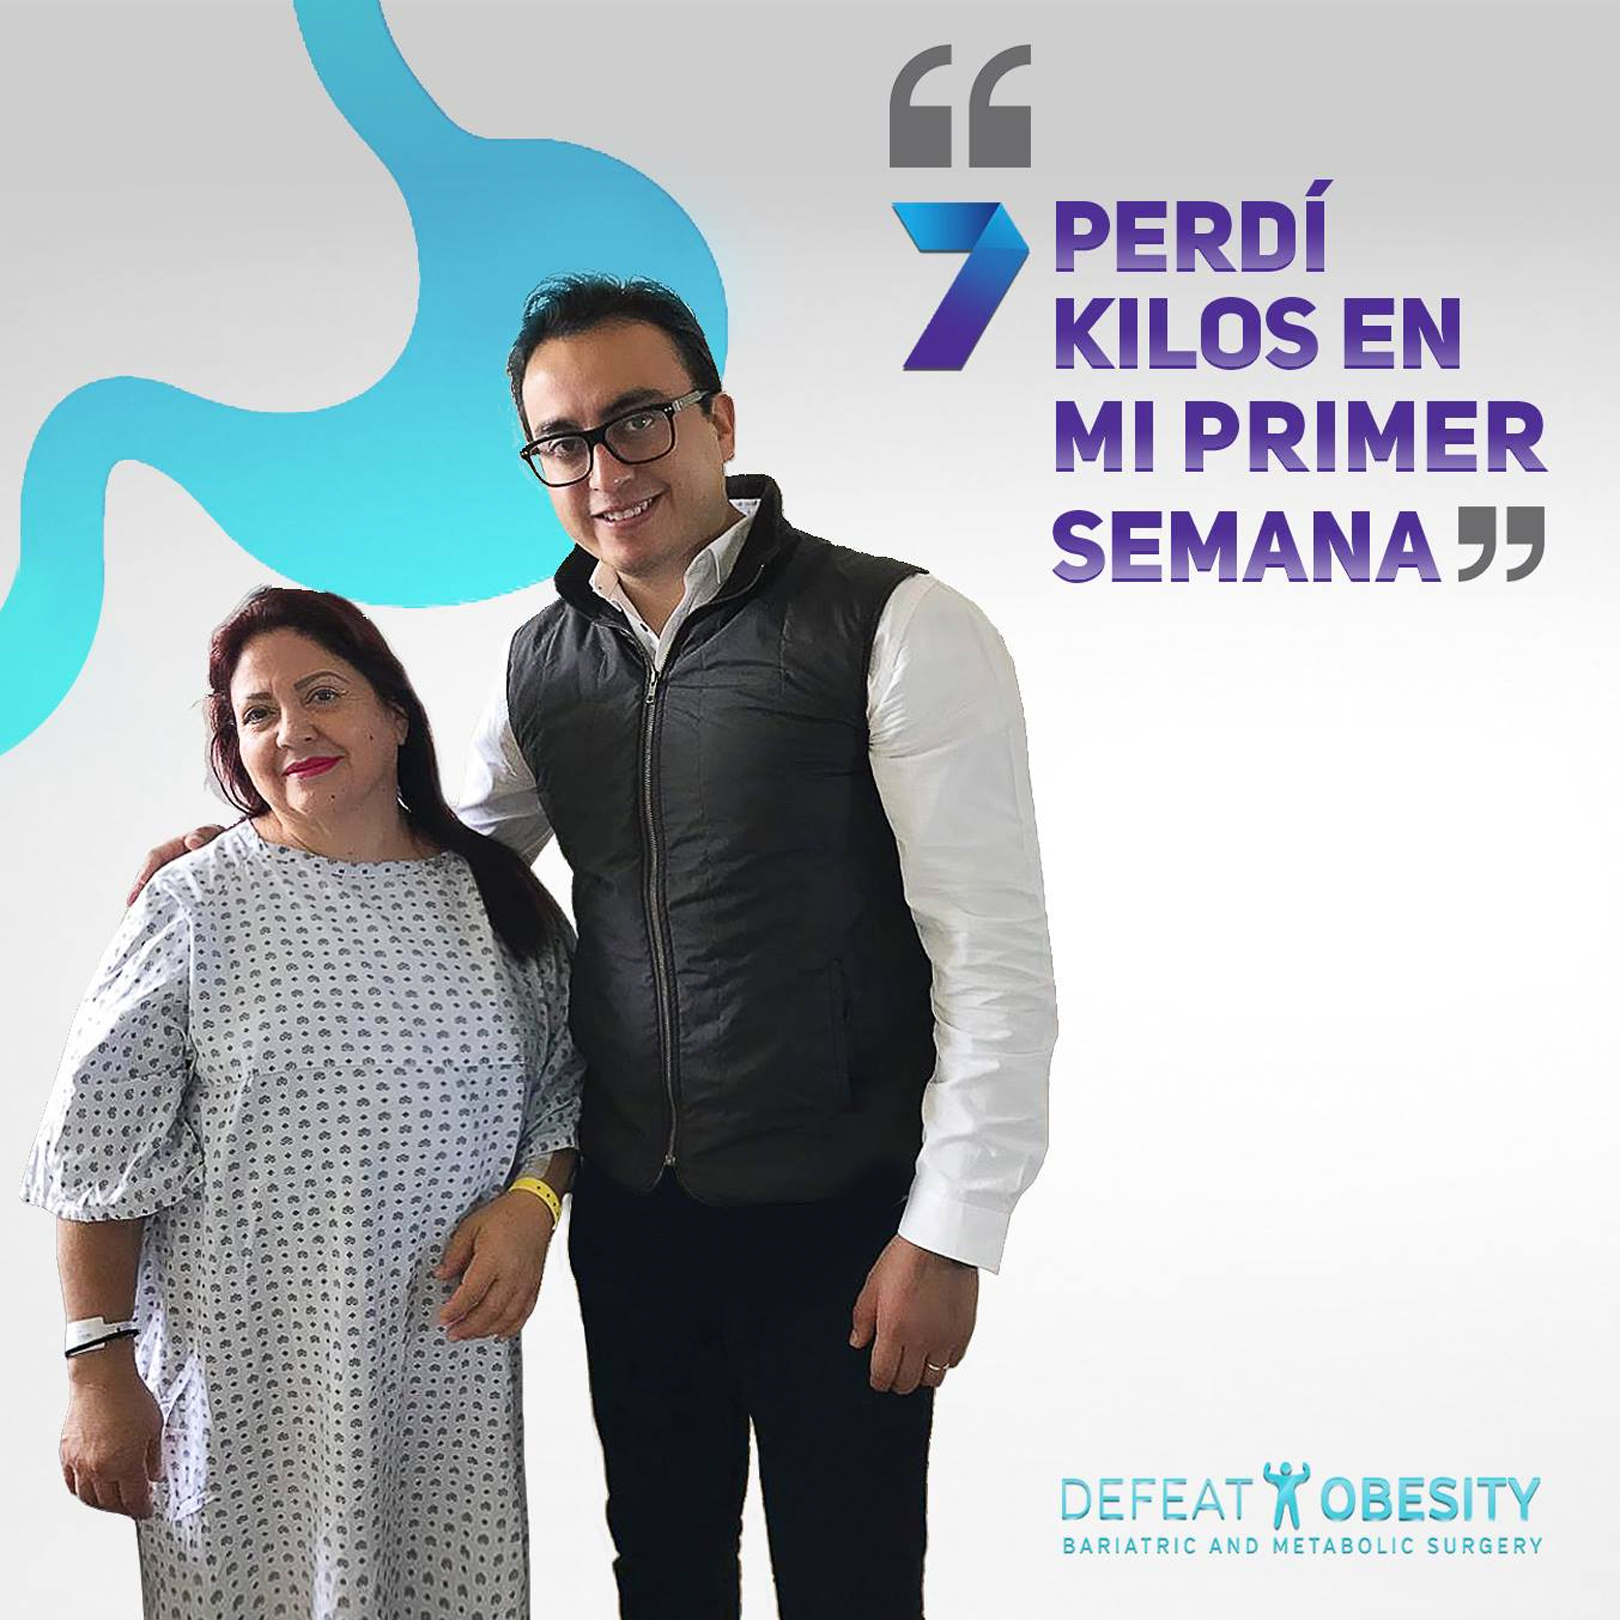 //defeatobesity.mx/wp-content/uploads/2019/06/perdida.jpg